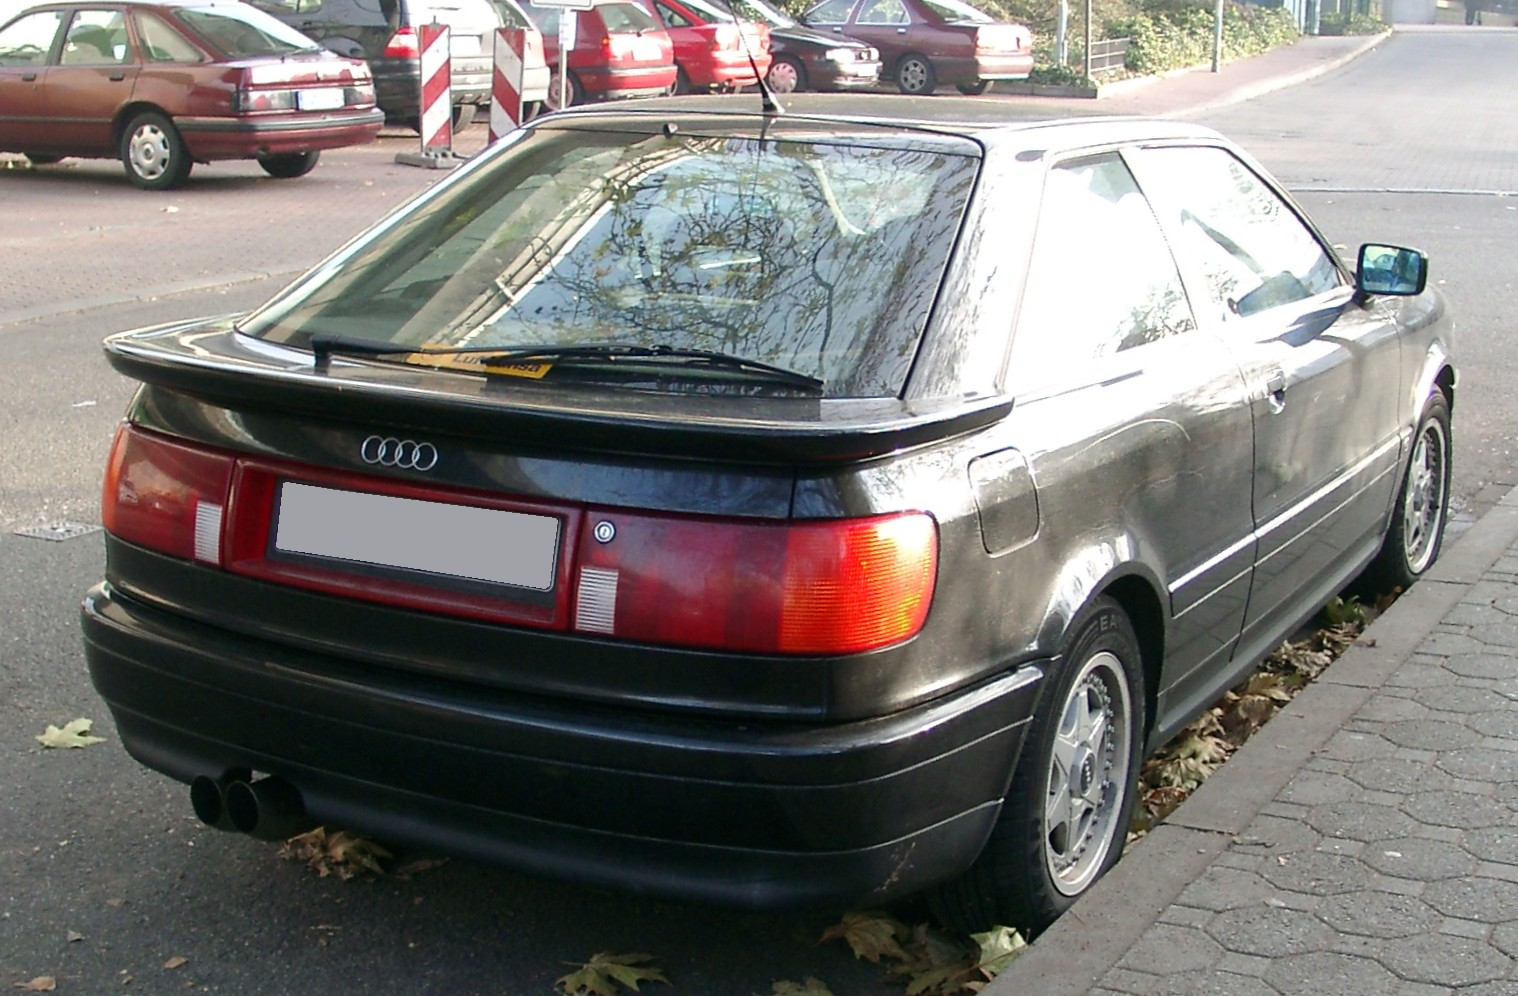 File:Audi Coupe rear 20071129.jpg - Wikimedia Commons